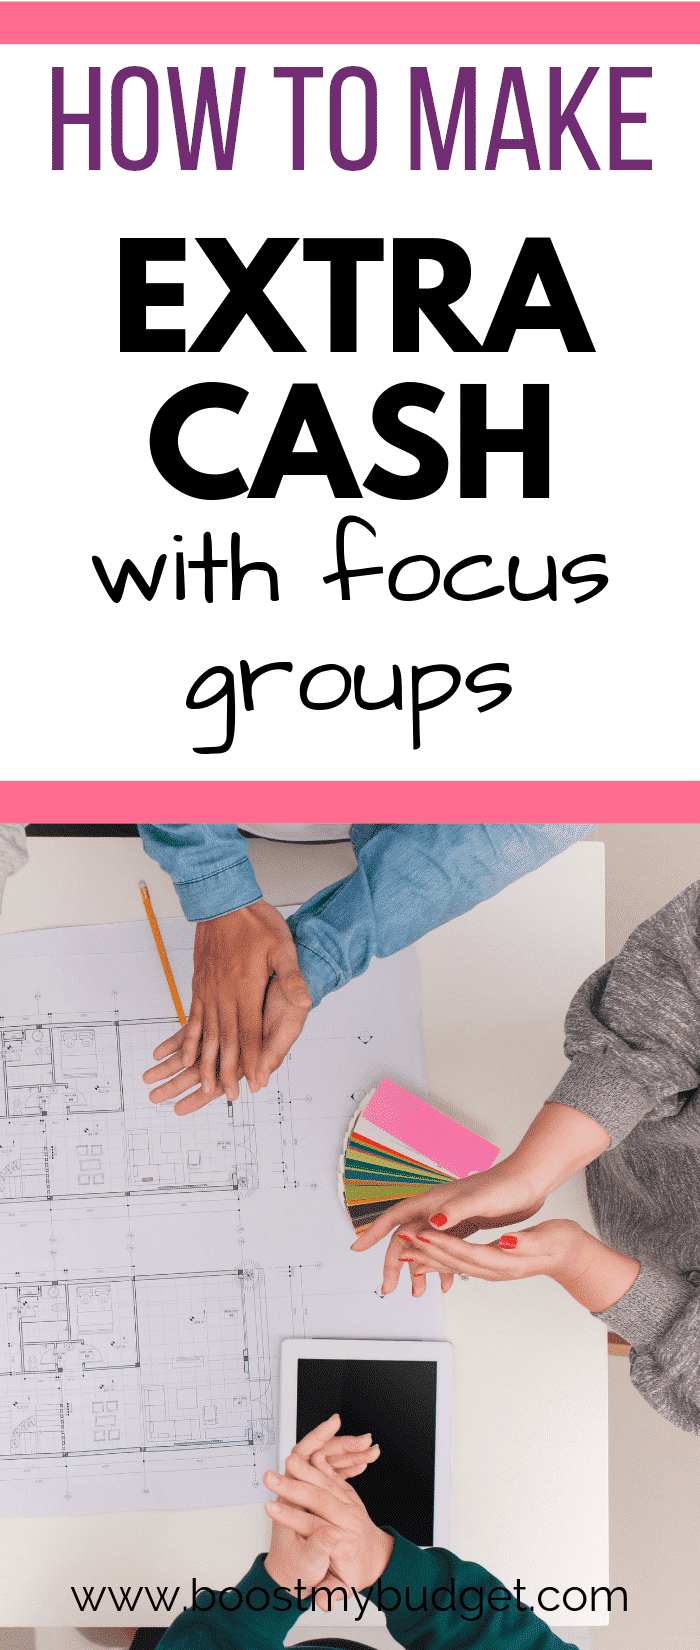 Make money in your spare time with focus groups! Focus groups simply involve a group chat about your opinions and experiences. Like an in-person paid survey - only it pays WAY better! You can do them in the evenings after your day job - a perfect way to make extra money for busy people. Click through for a list of focus group companies to join.